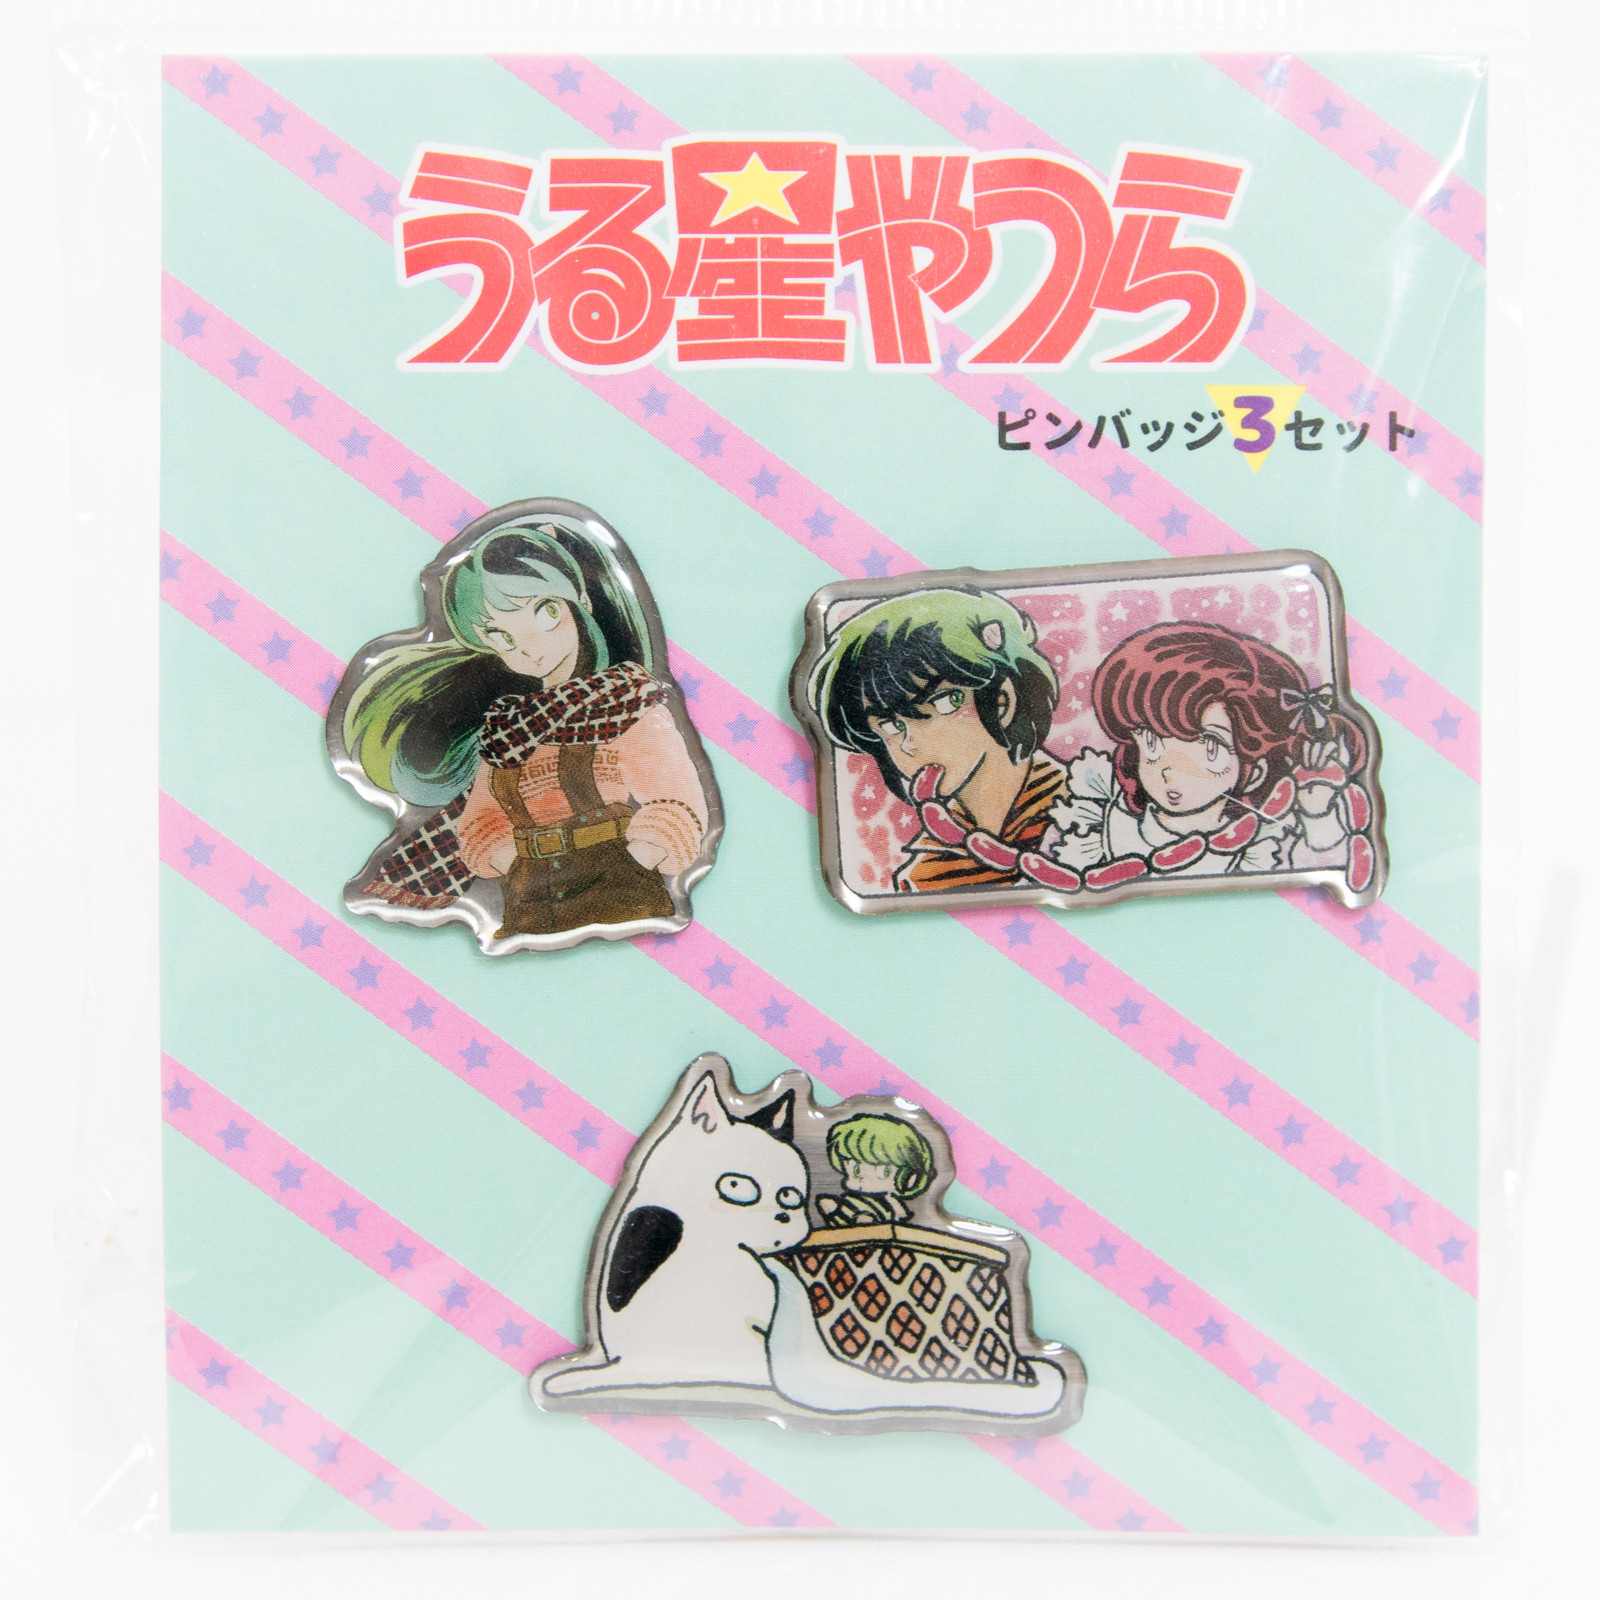 Urusei Yatsura Metal Pins 3pc Set B JAPAN ANIME RUMIKO TAKAHASHI